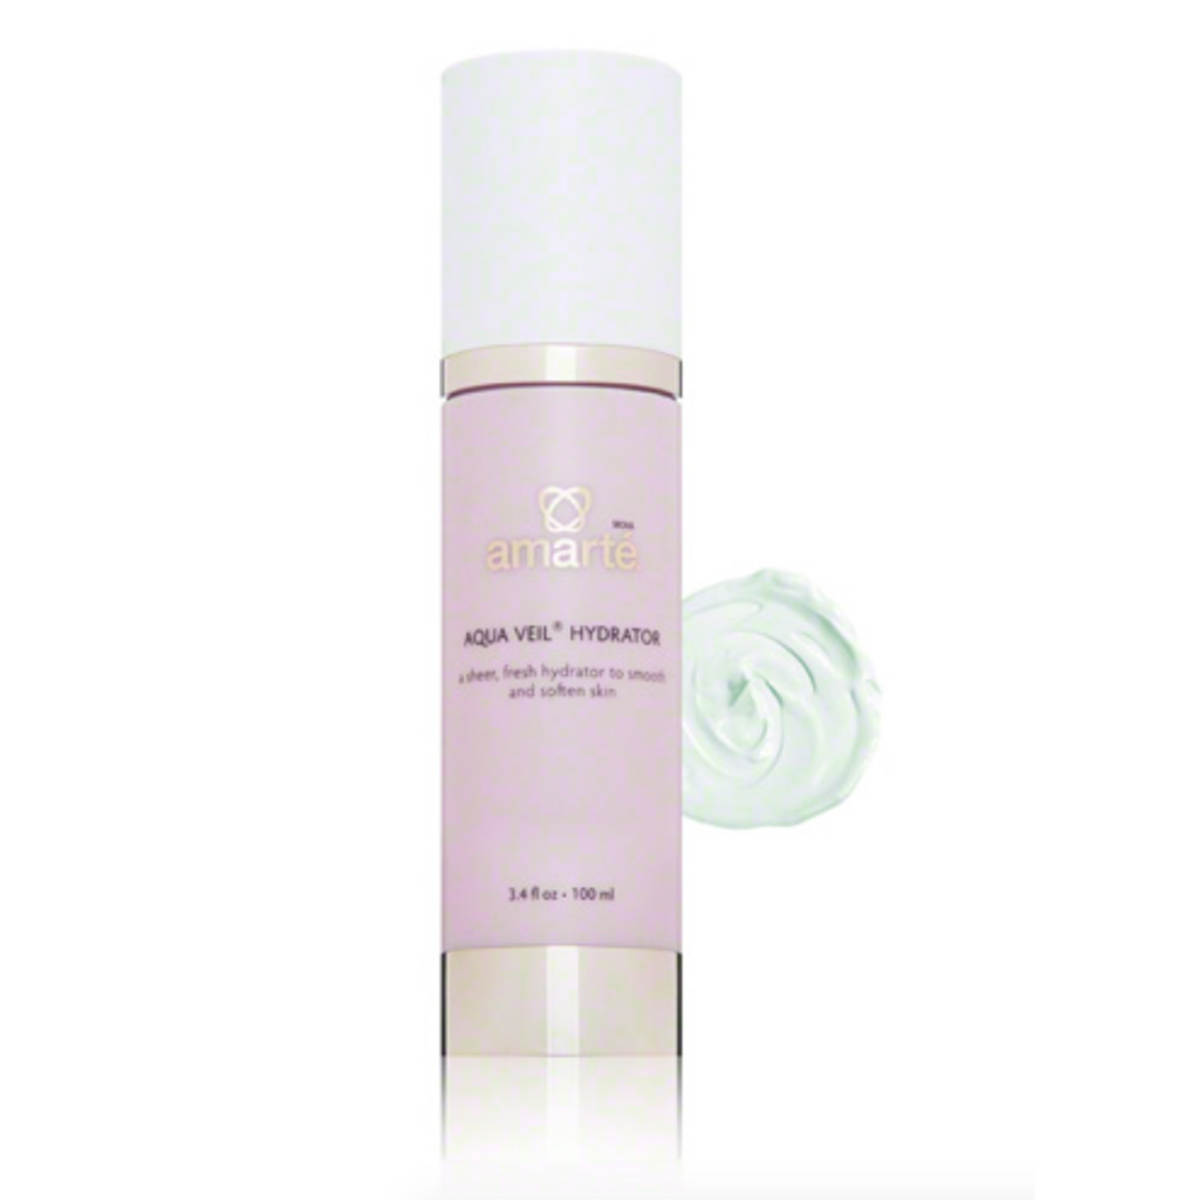 Need an Overnight Redness Fix? This Hydrating Balm Will Calm Skin Fast